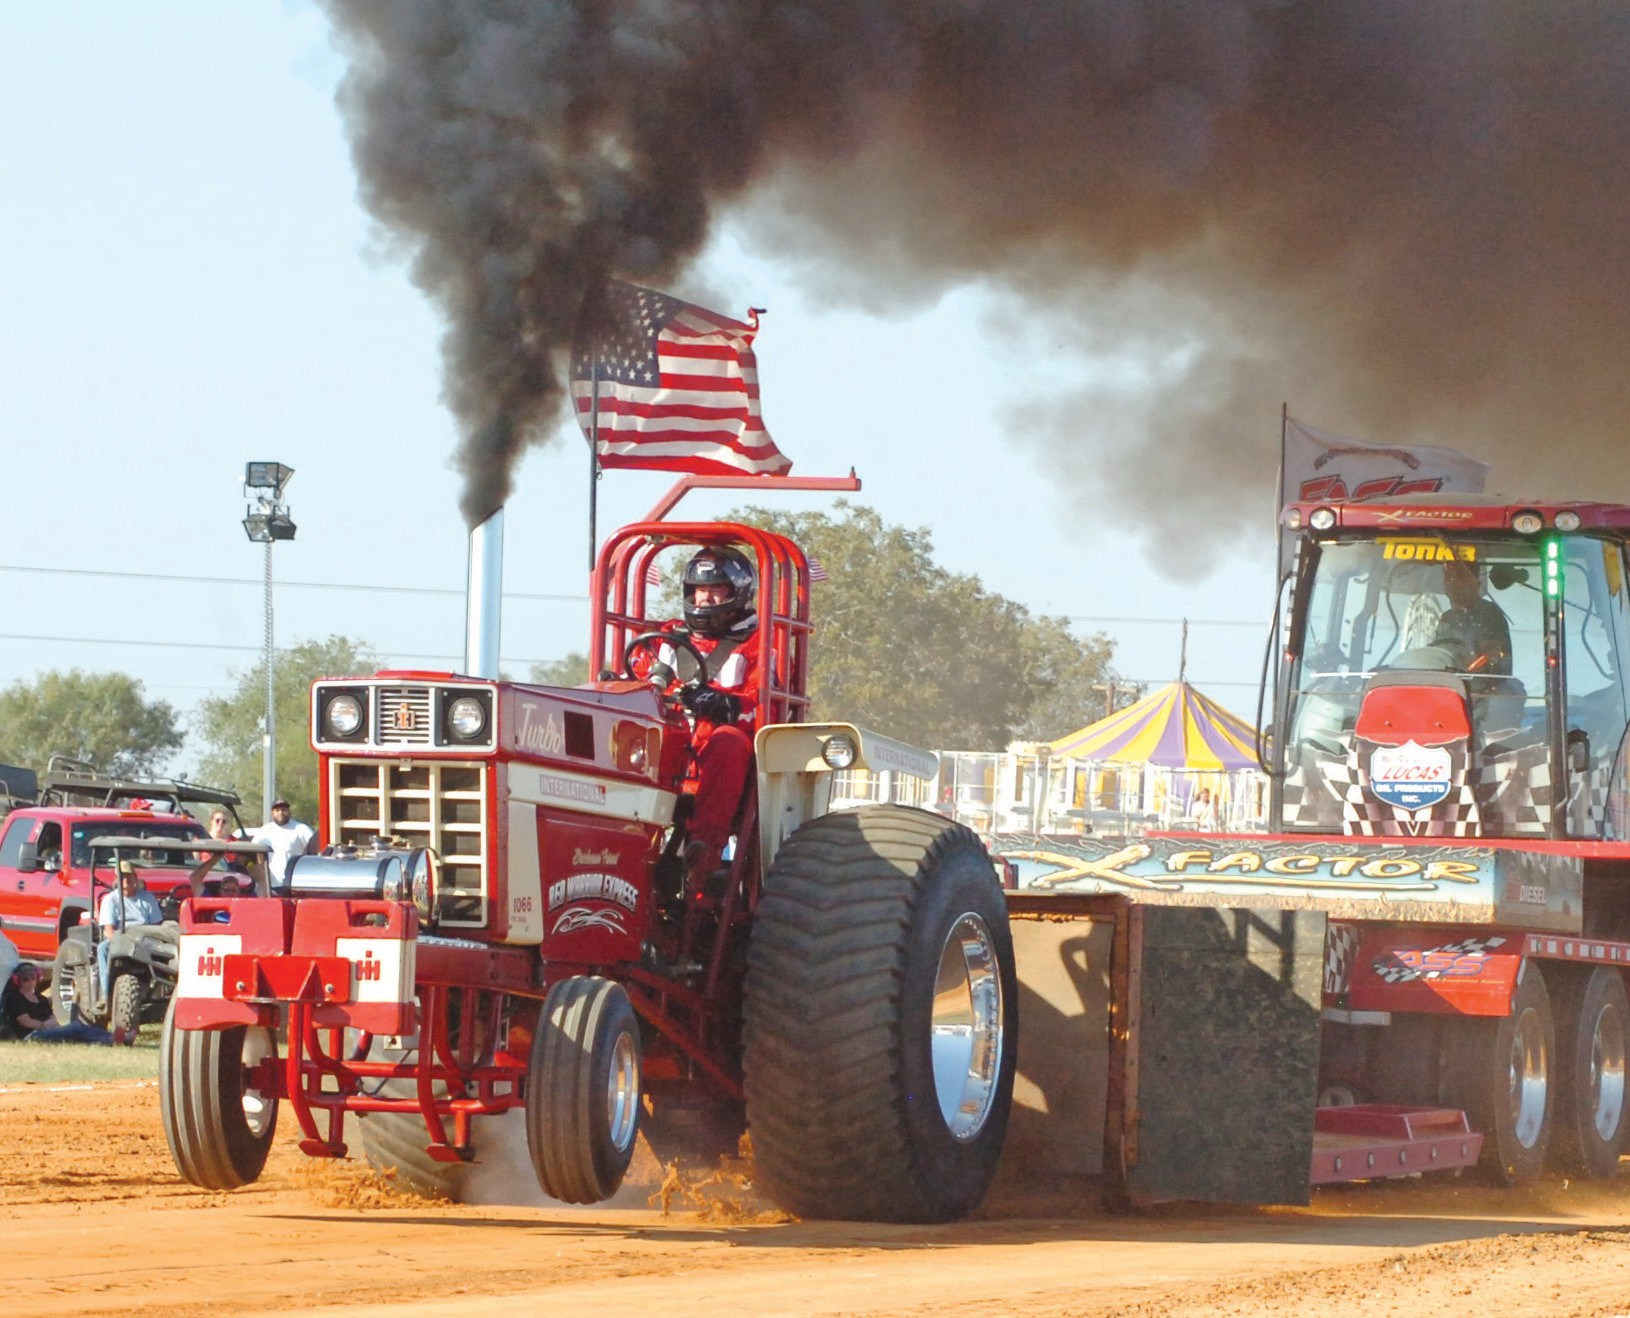 A successful tractor pull was held at this year's Cowboy Homecoming weekend. The event drew a large crowd and received rave reviews.